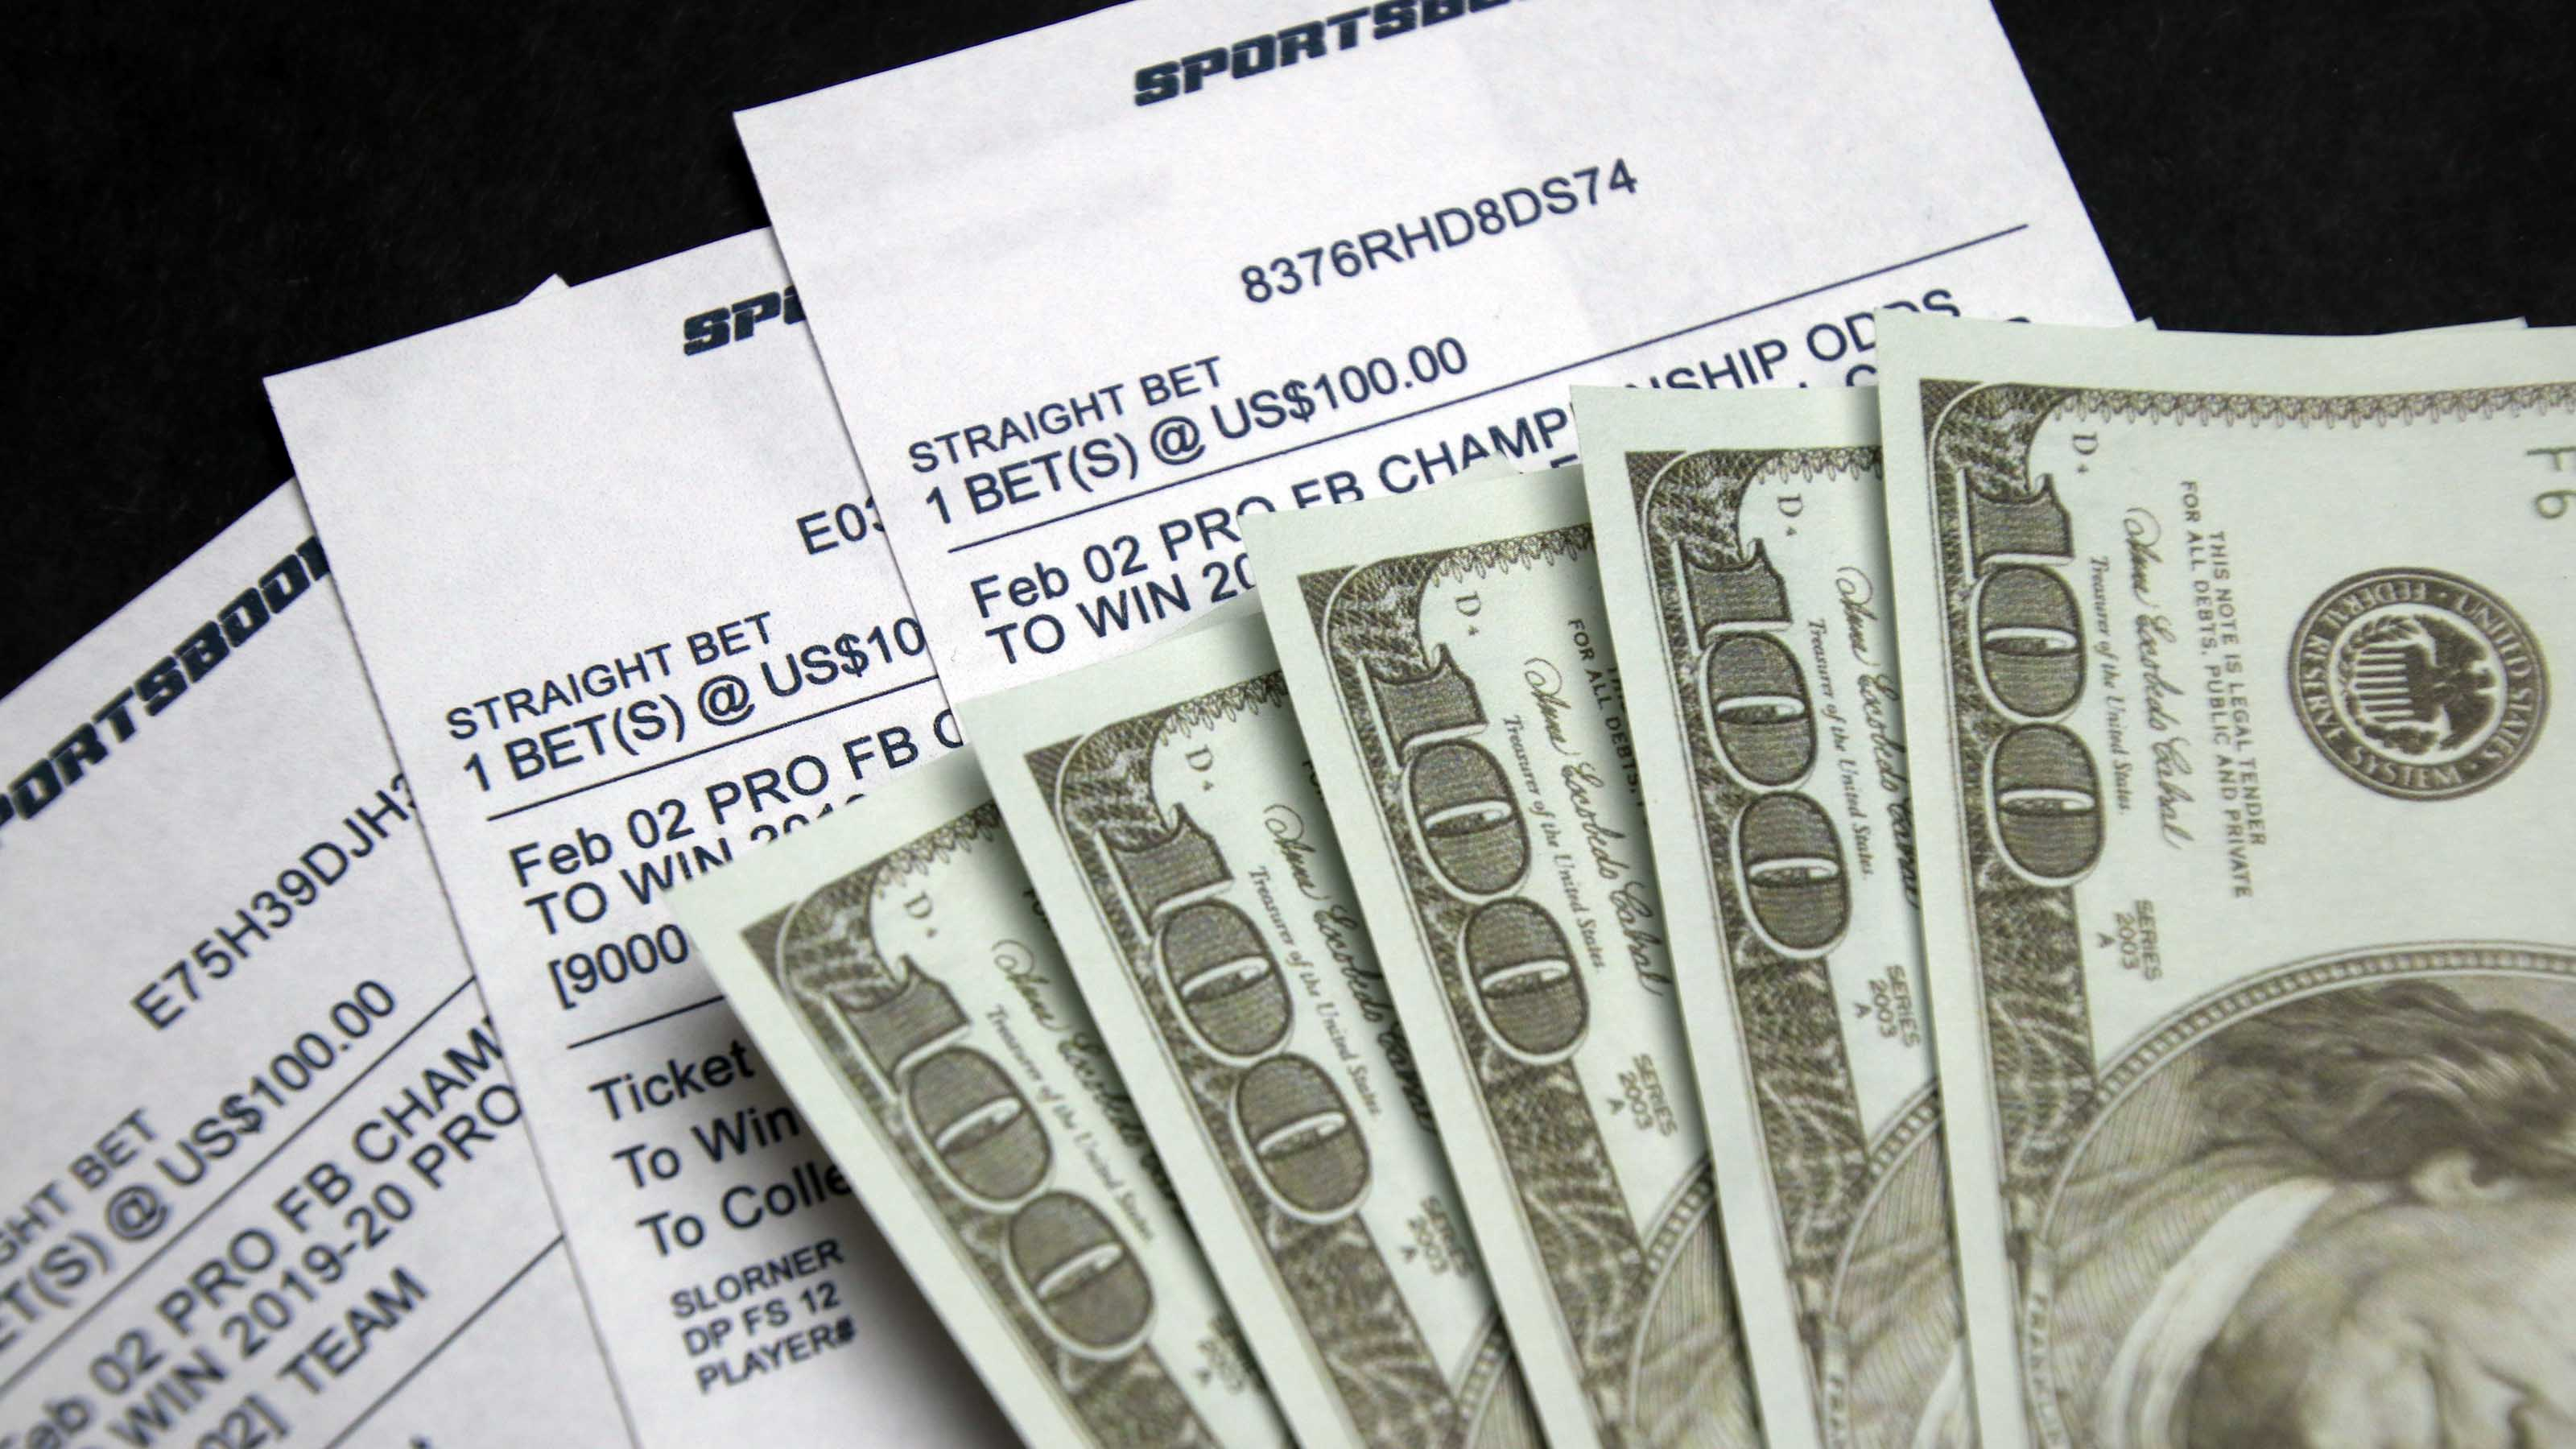 7 Best Sports Betting Stocks to Wager On | Kiplinger